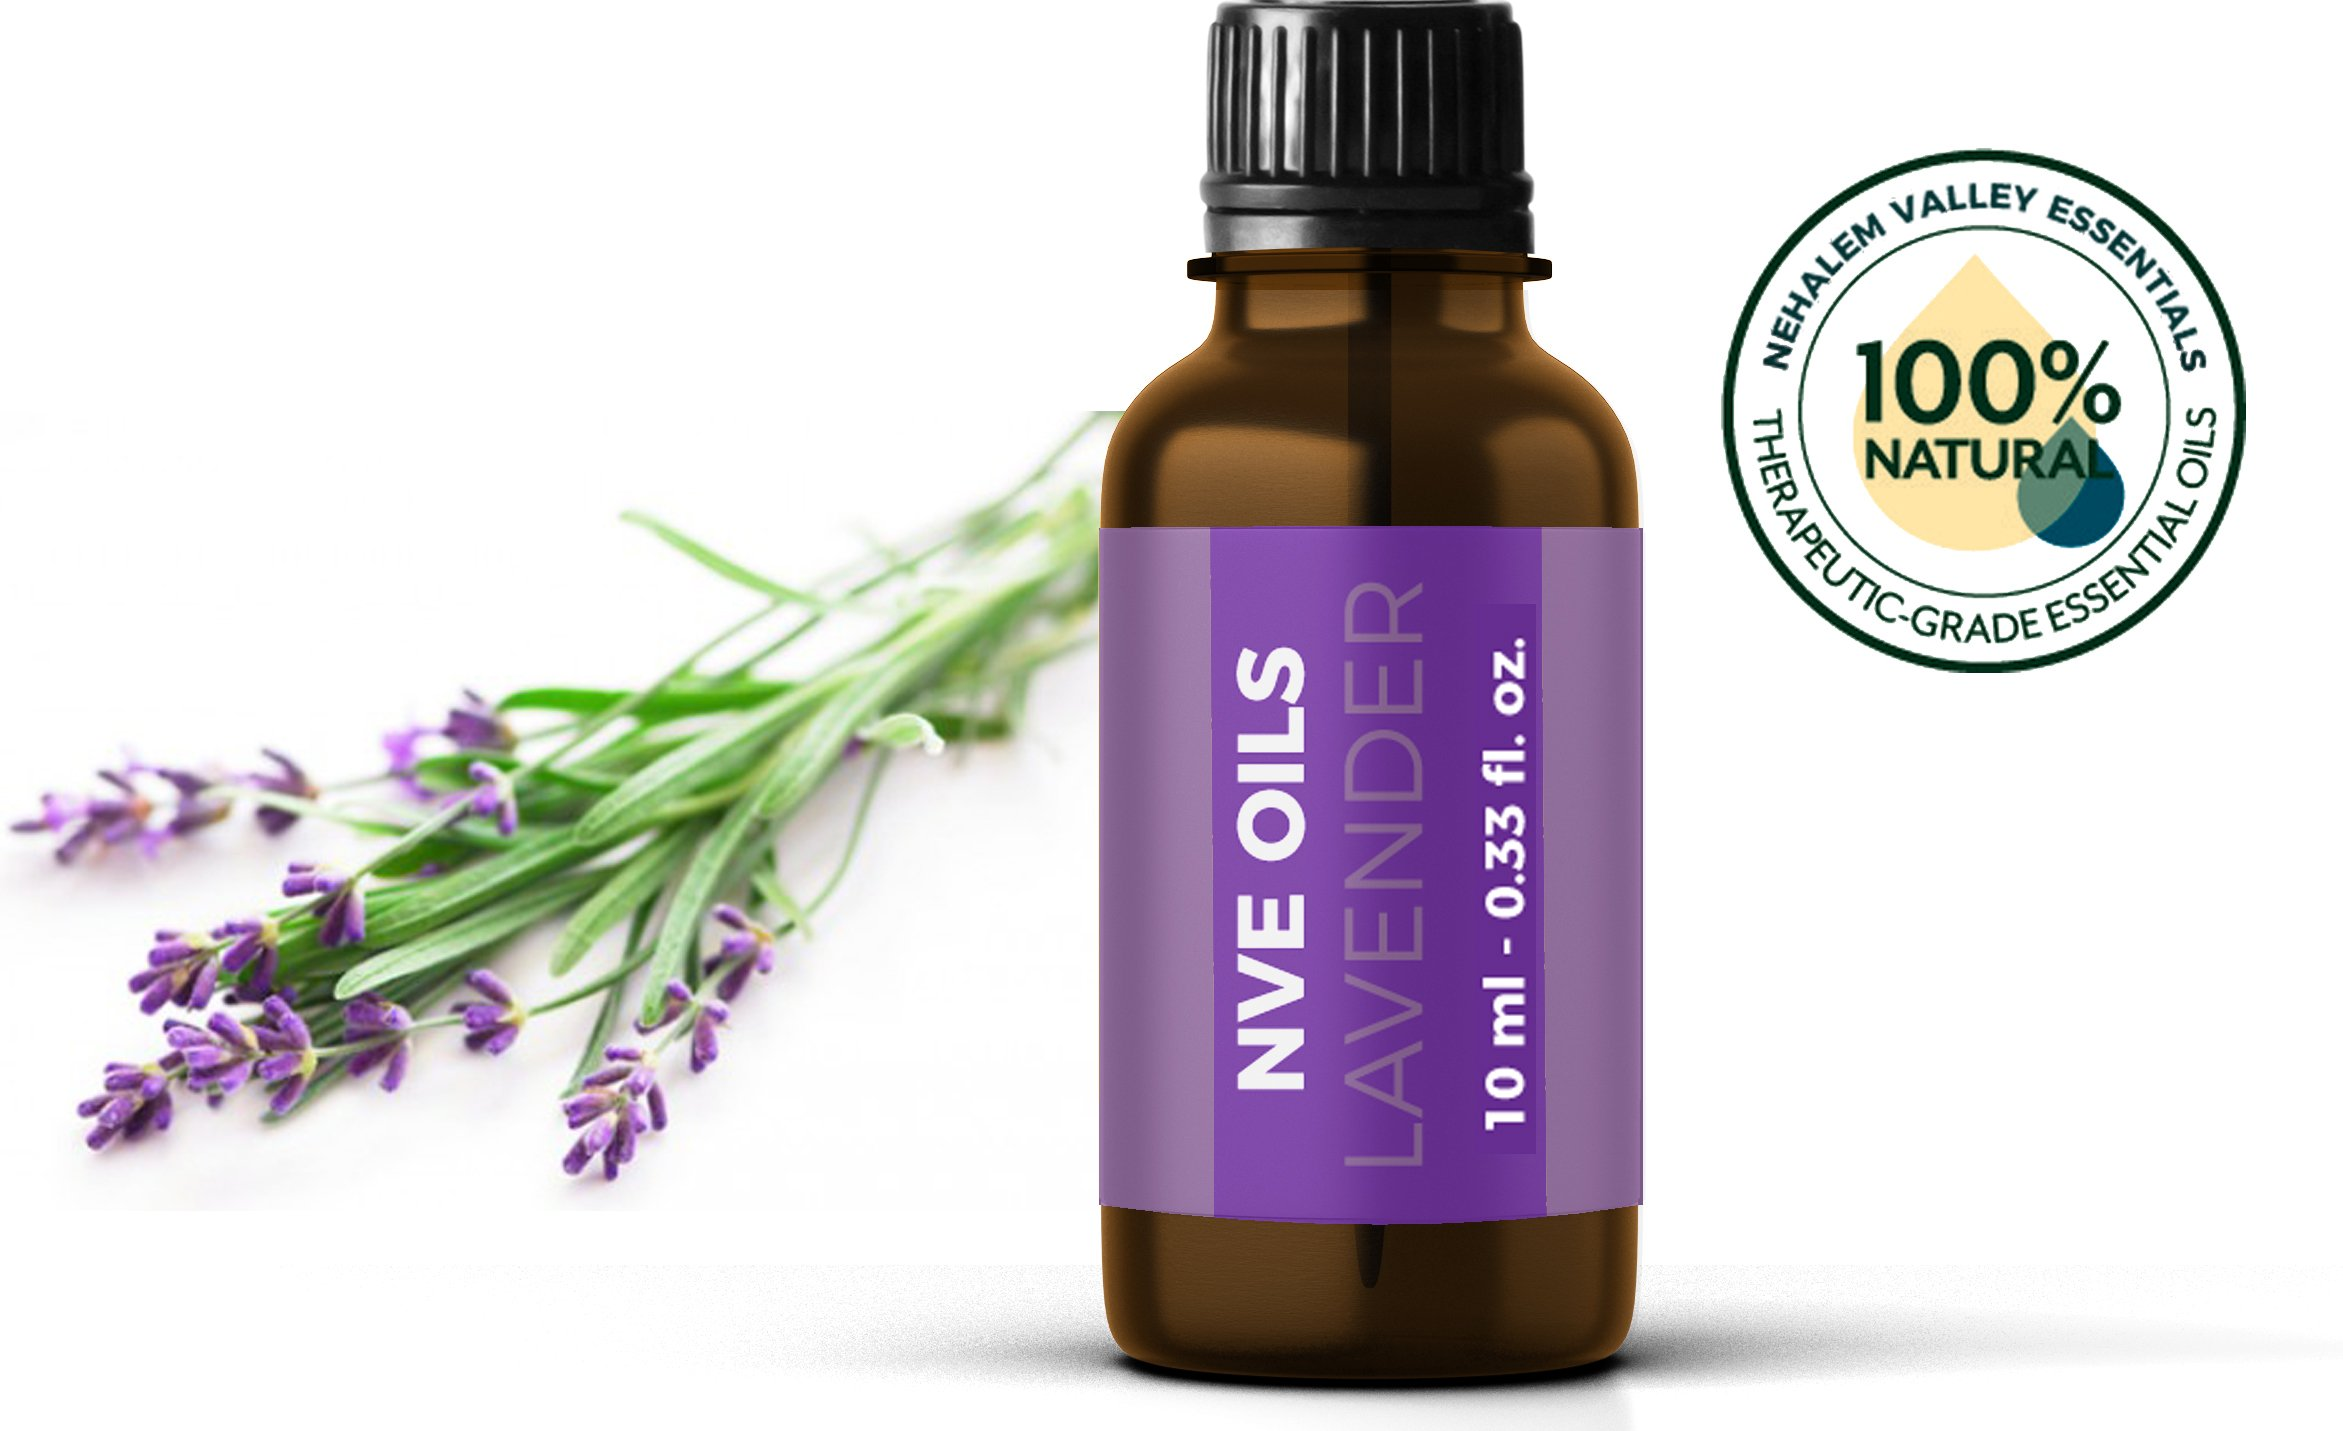 Pure Lavender Essential Oil By NVE Oils-Guaranteed 100% Pure & Natural For Diffuser, Aromatherapy, Headache, Pain, Meditation, Stress, Anxiety, Sleep, Cosmetics, Soaps, Candles, Skin Care, etc.